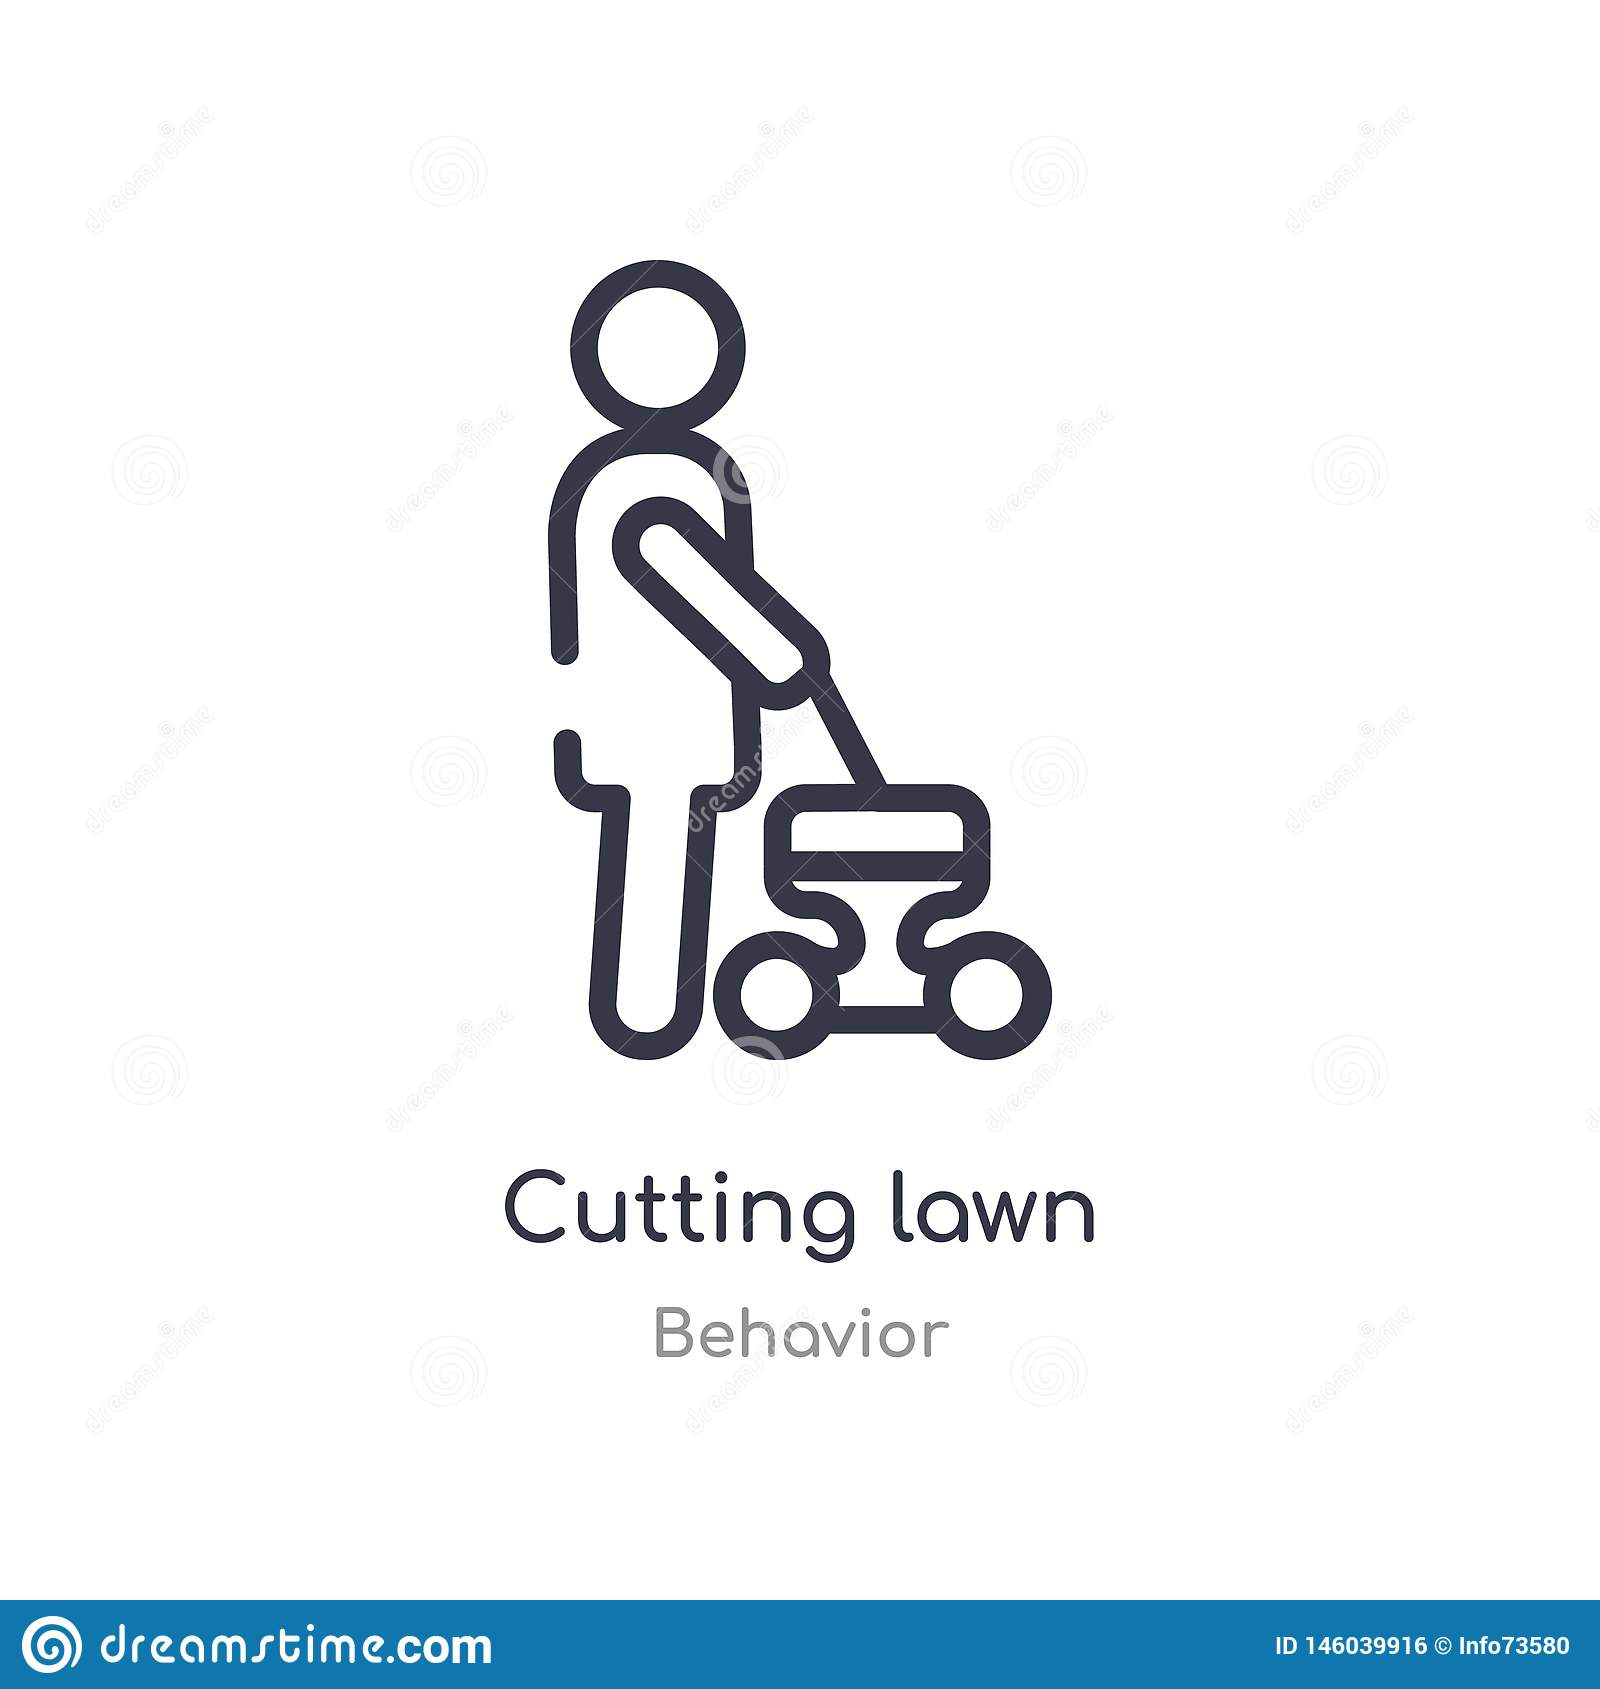 cutting lawn outline icon. isolated line vector illustration from behavior collection. editable thin stroke cutting lawn icon on